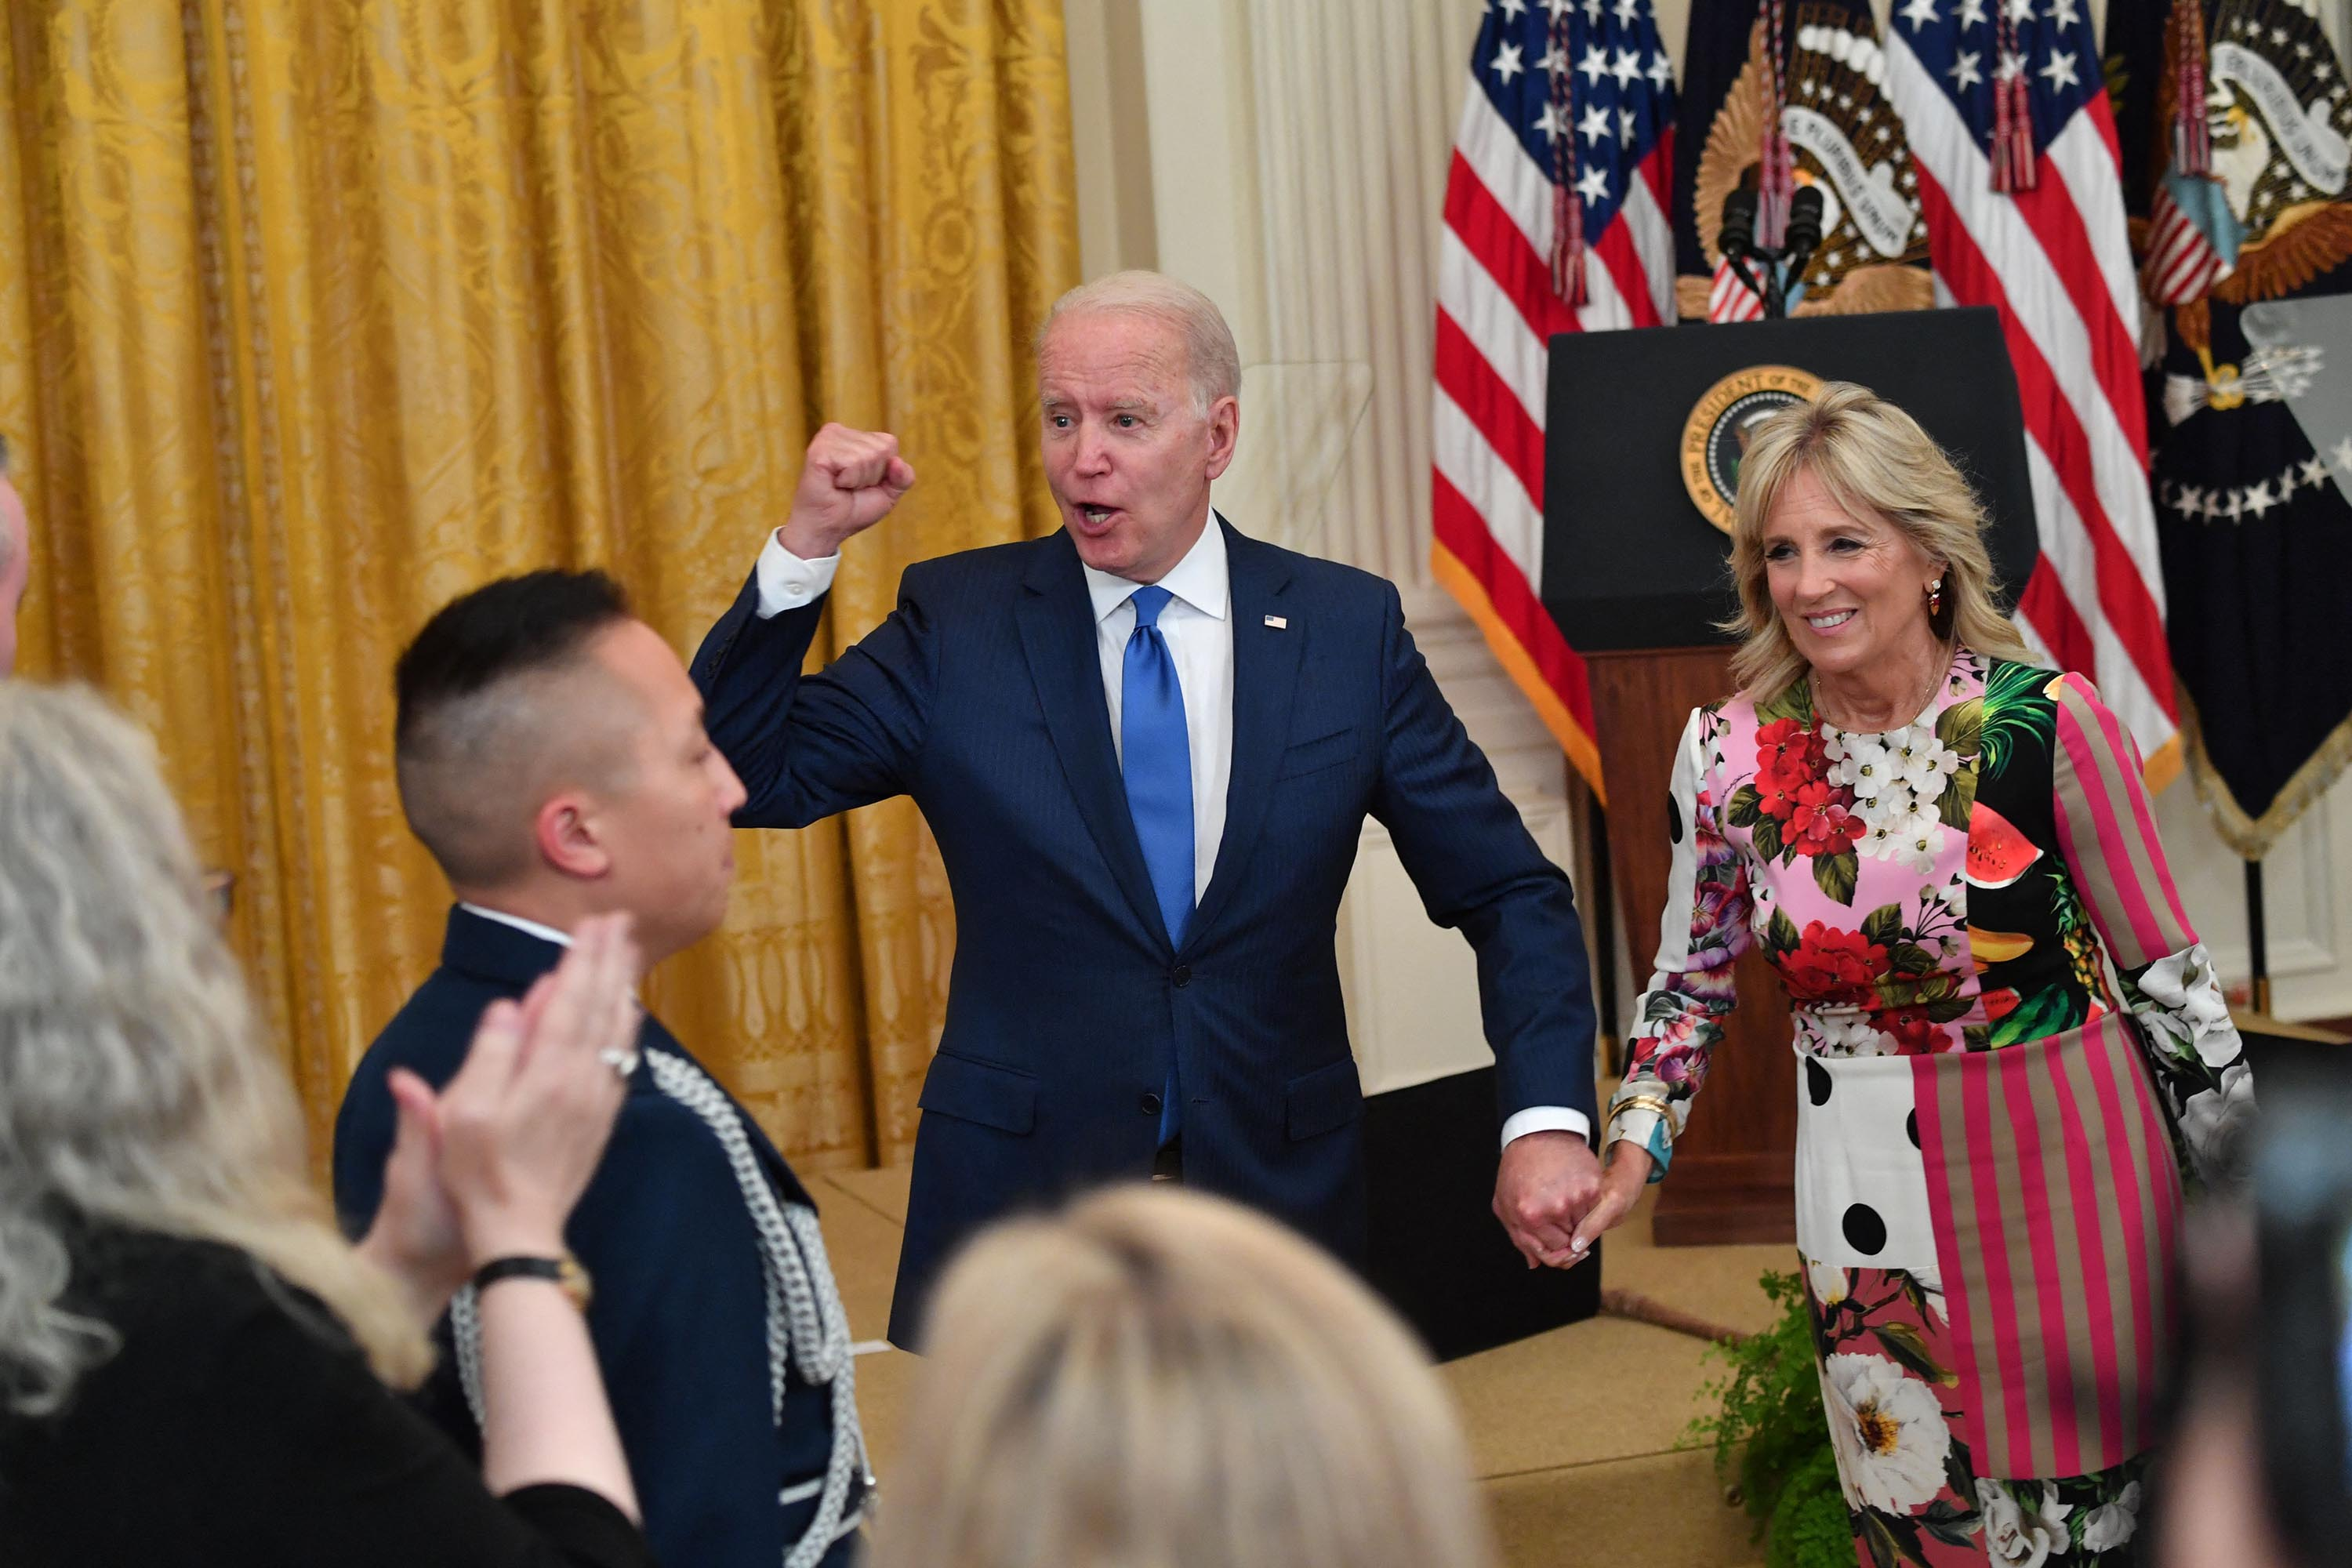 Biden touts US coronavirus progress at July 4 White House event: 'America is coming back together'